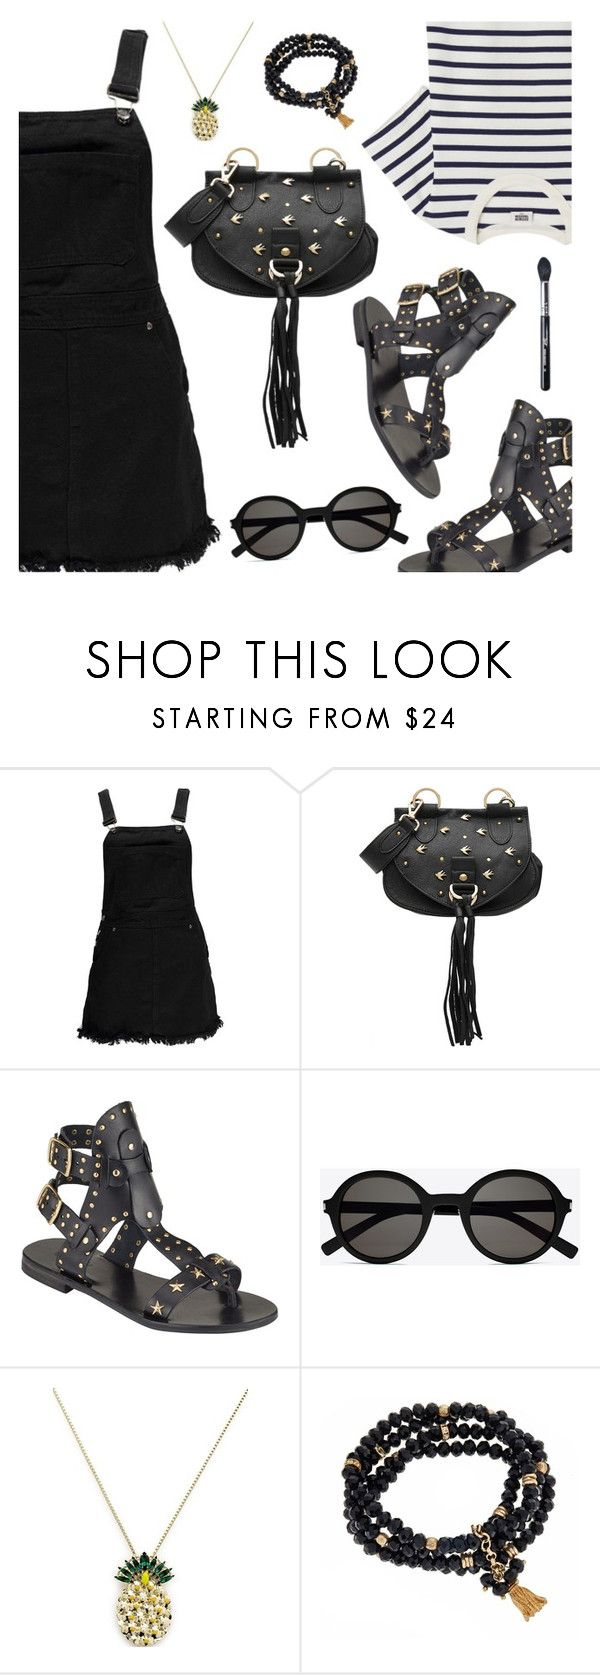 """""""Outfit of the Day"""" by dressedbyrose ❤ liked on Polyvore featuring Boohoo, See by Chloé, Somerset by Alice Temperley, Yves Saint Laurent, Anton Heunis, Fornash, Sigma, ootd and polyvoreeditorial"""